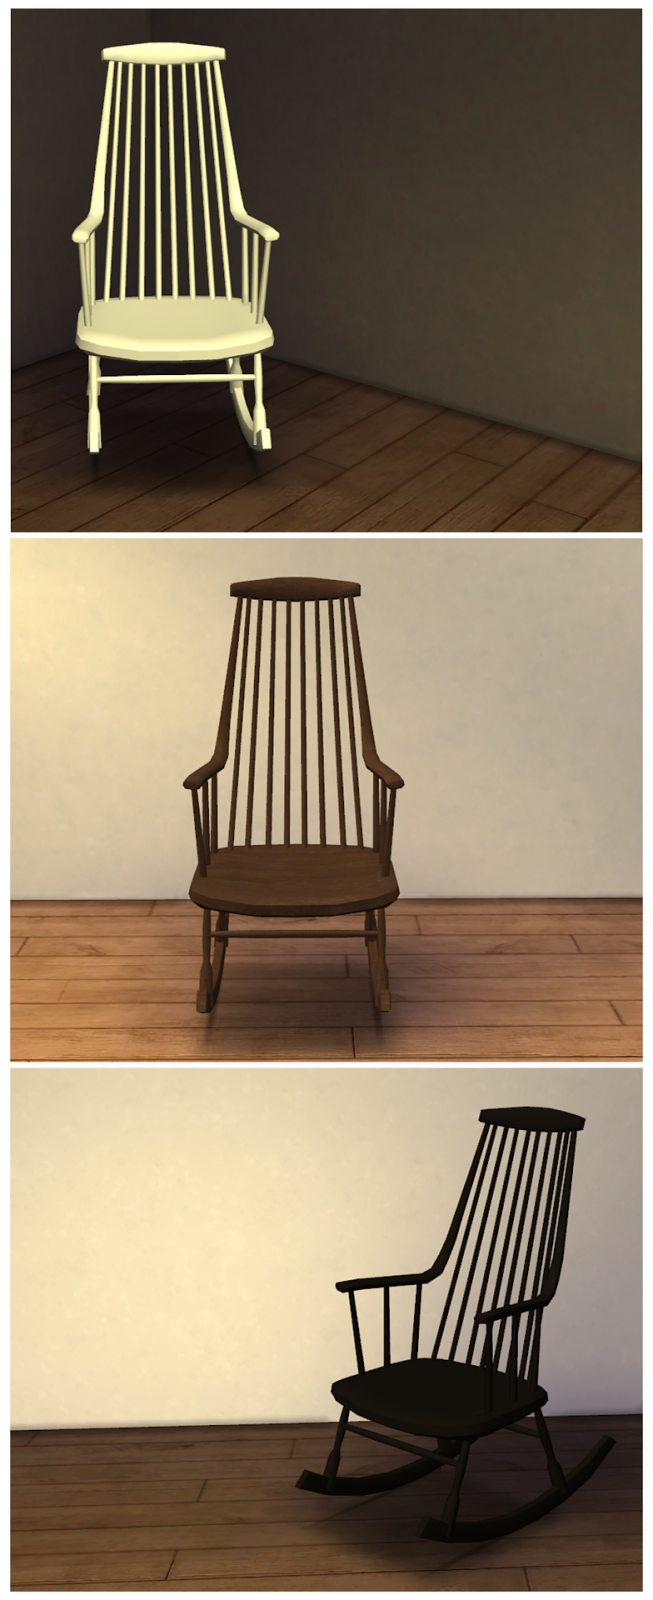 My Sims 4 Blog Ts3 Pocci S Rocking Chair Conversion By